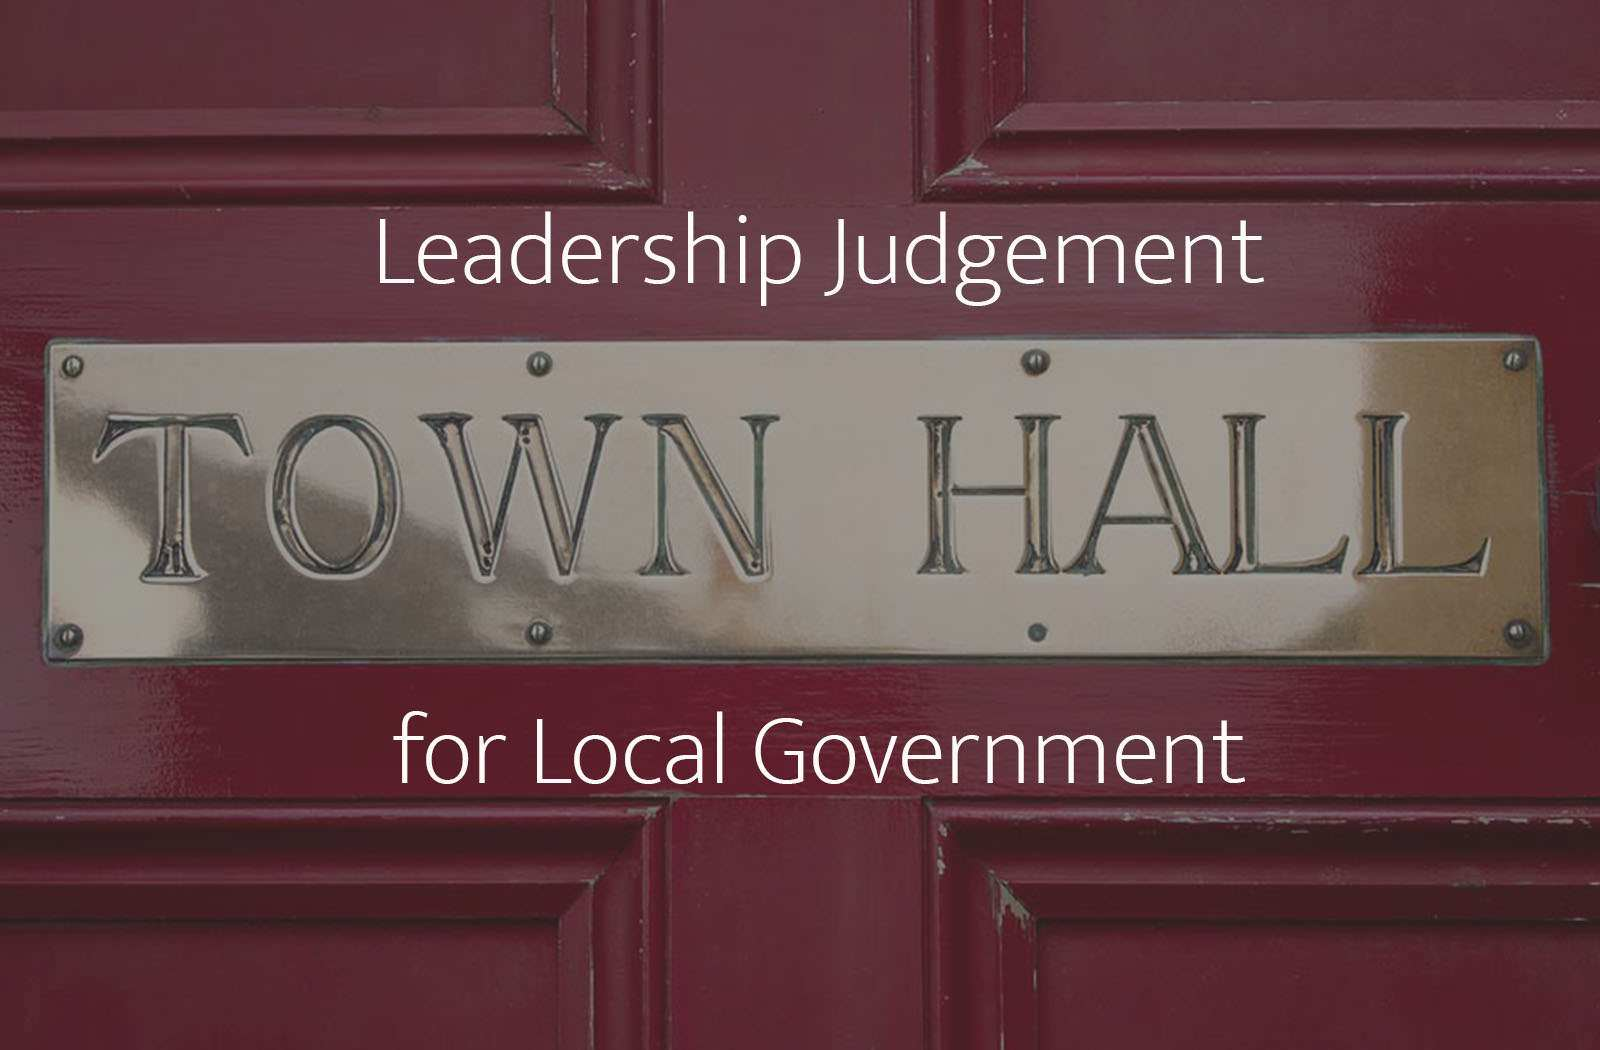 Leadership Judgement: the LJI for local government